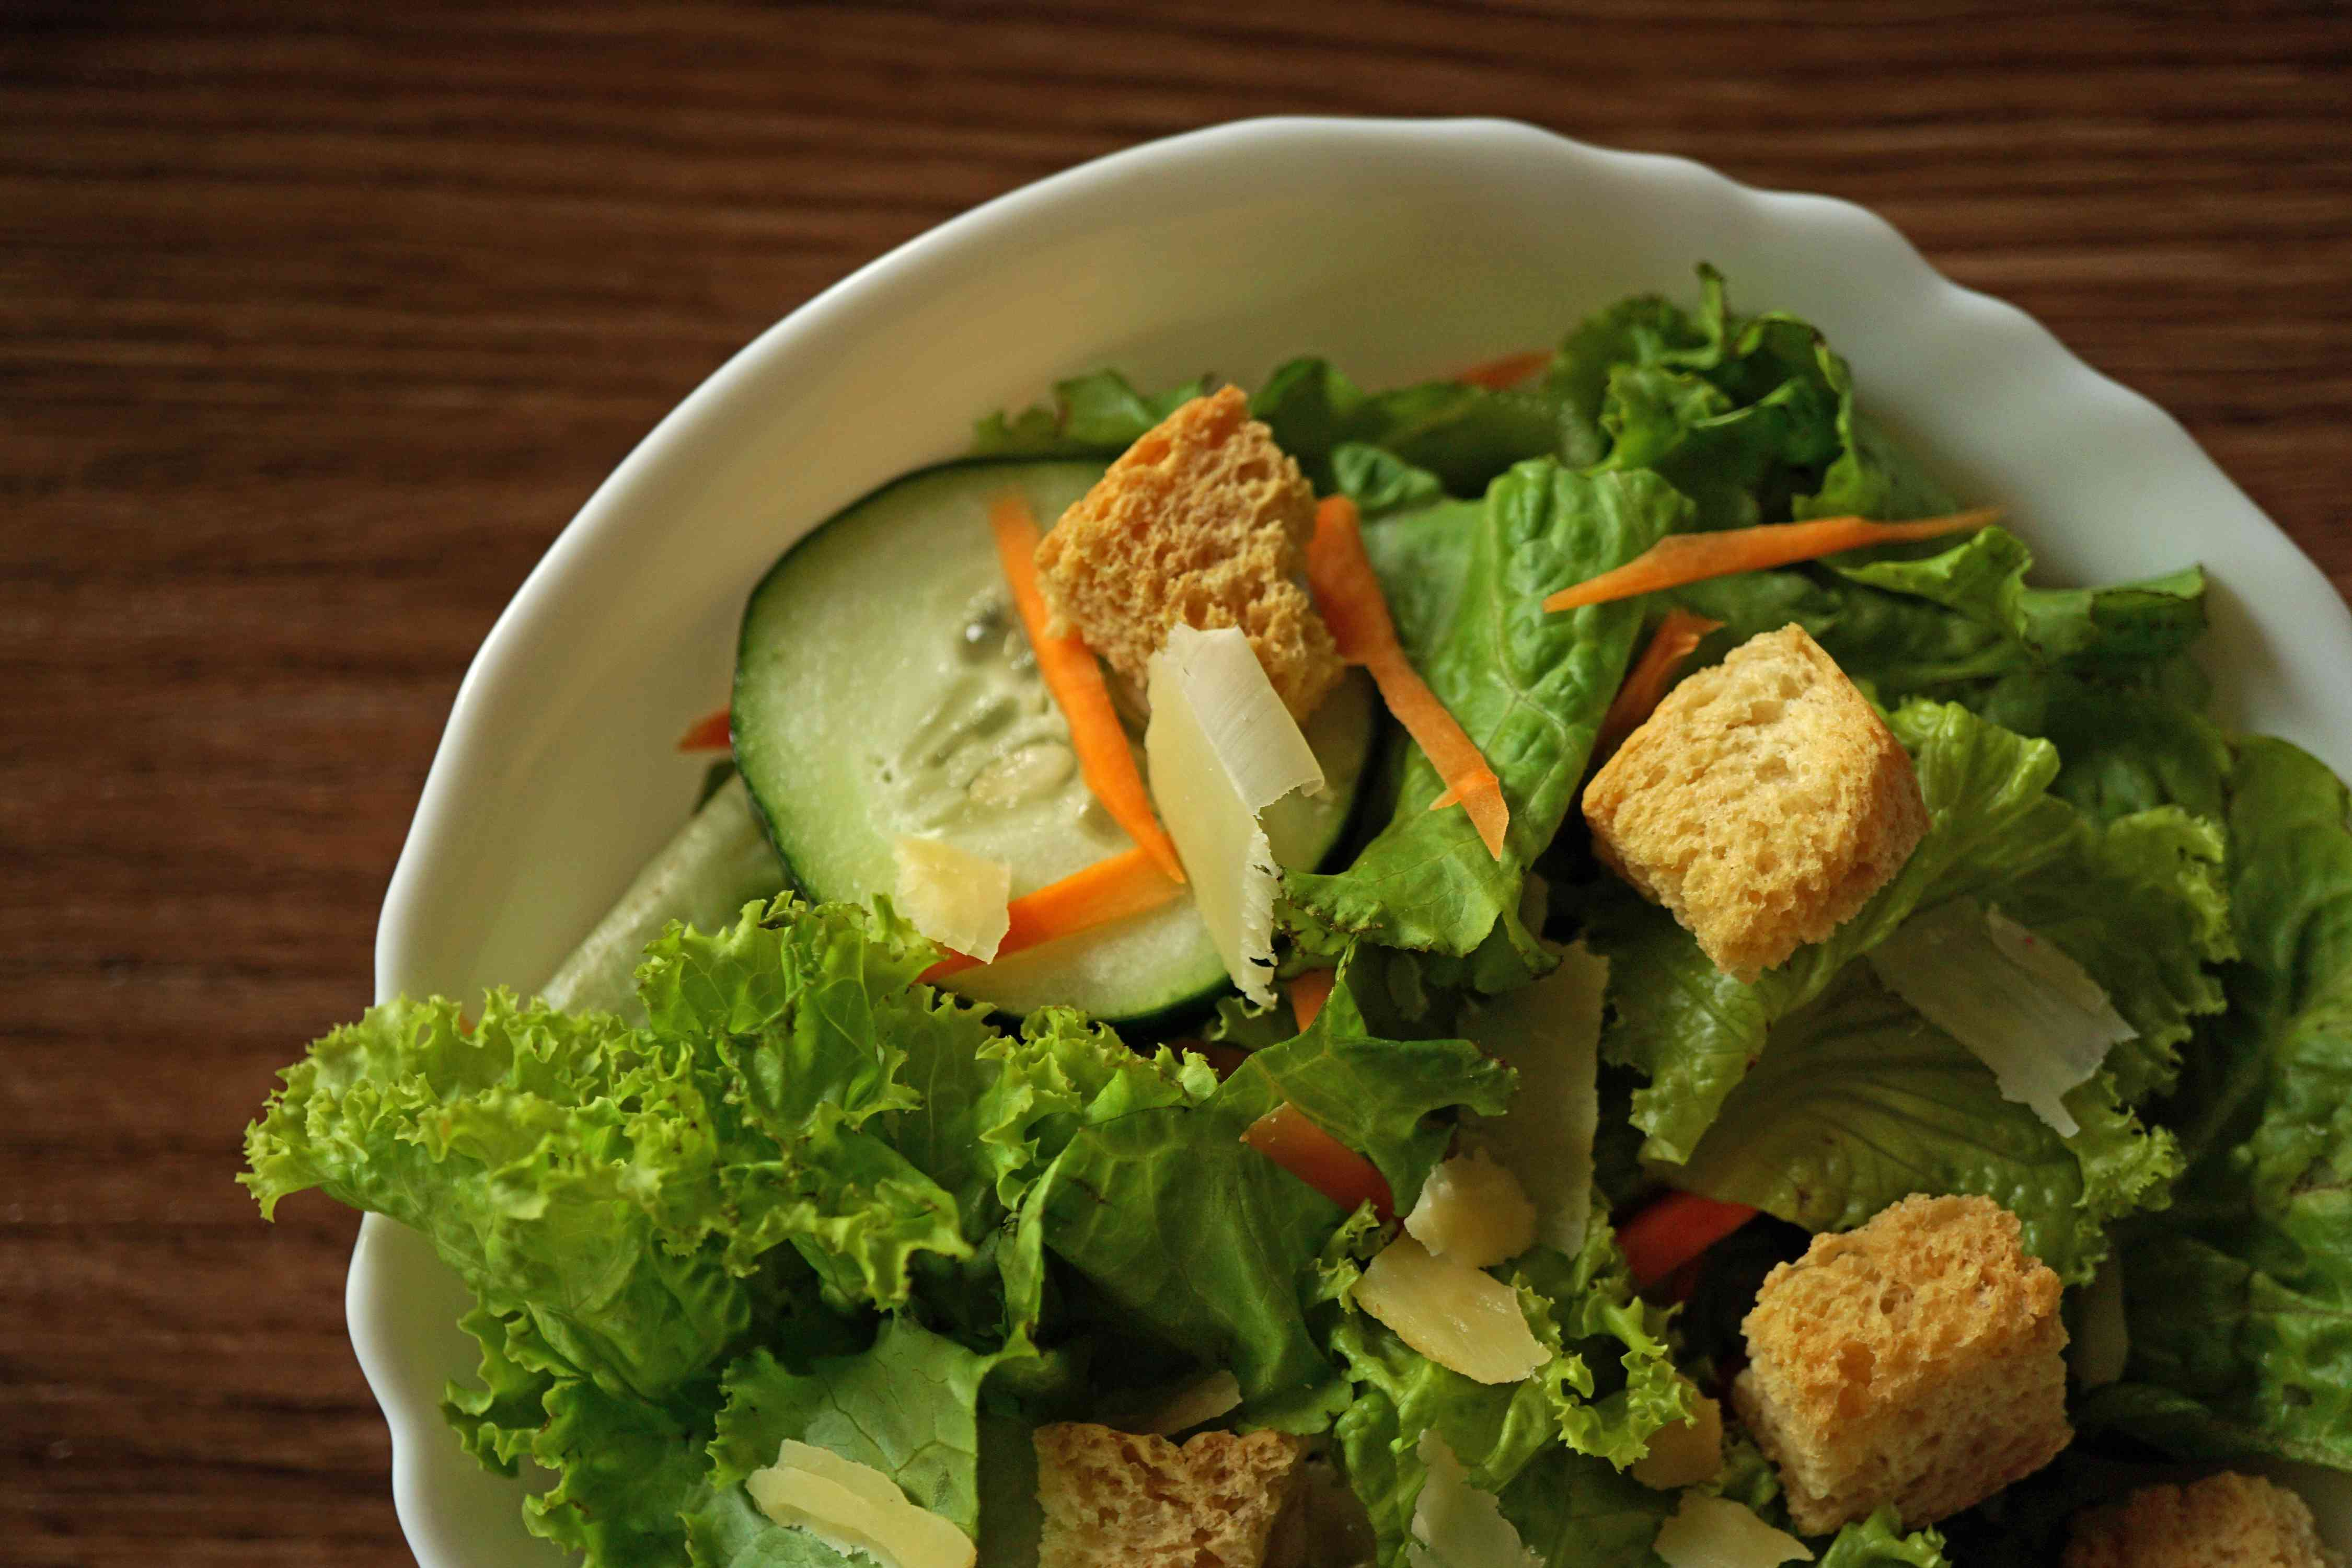 salad greens in bowl with croutons